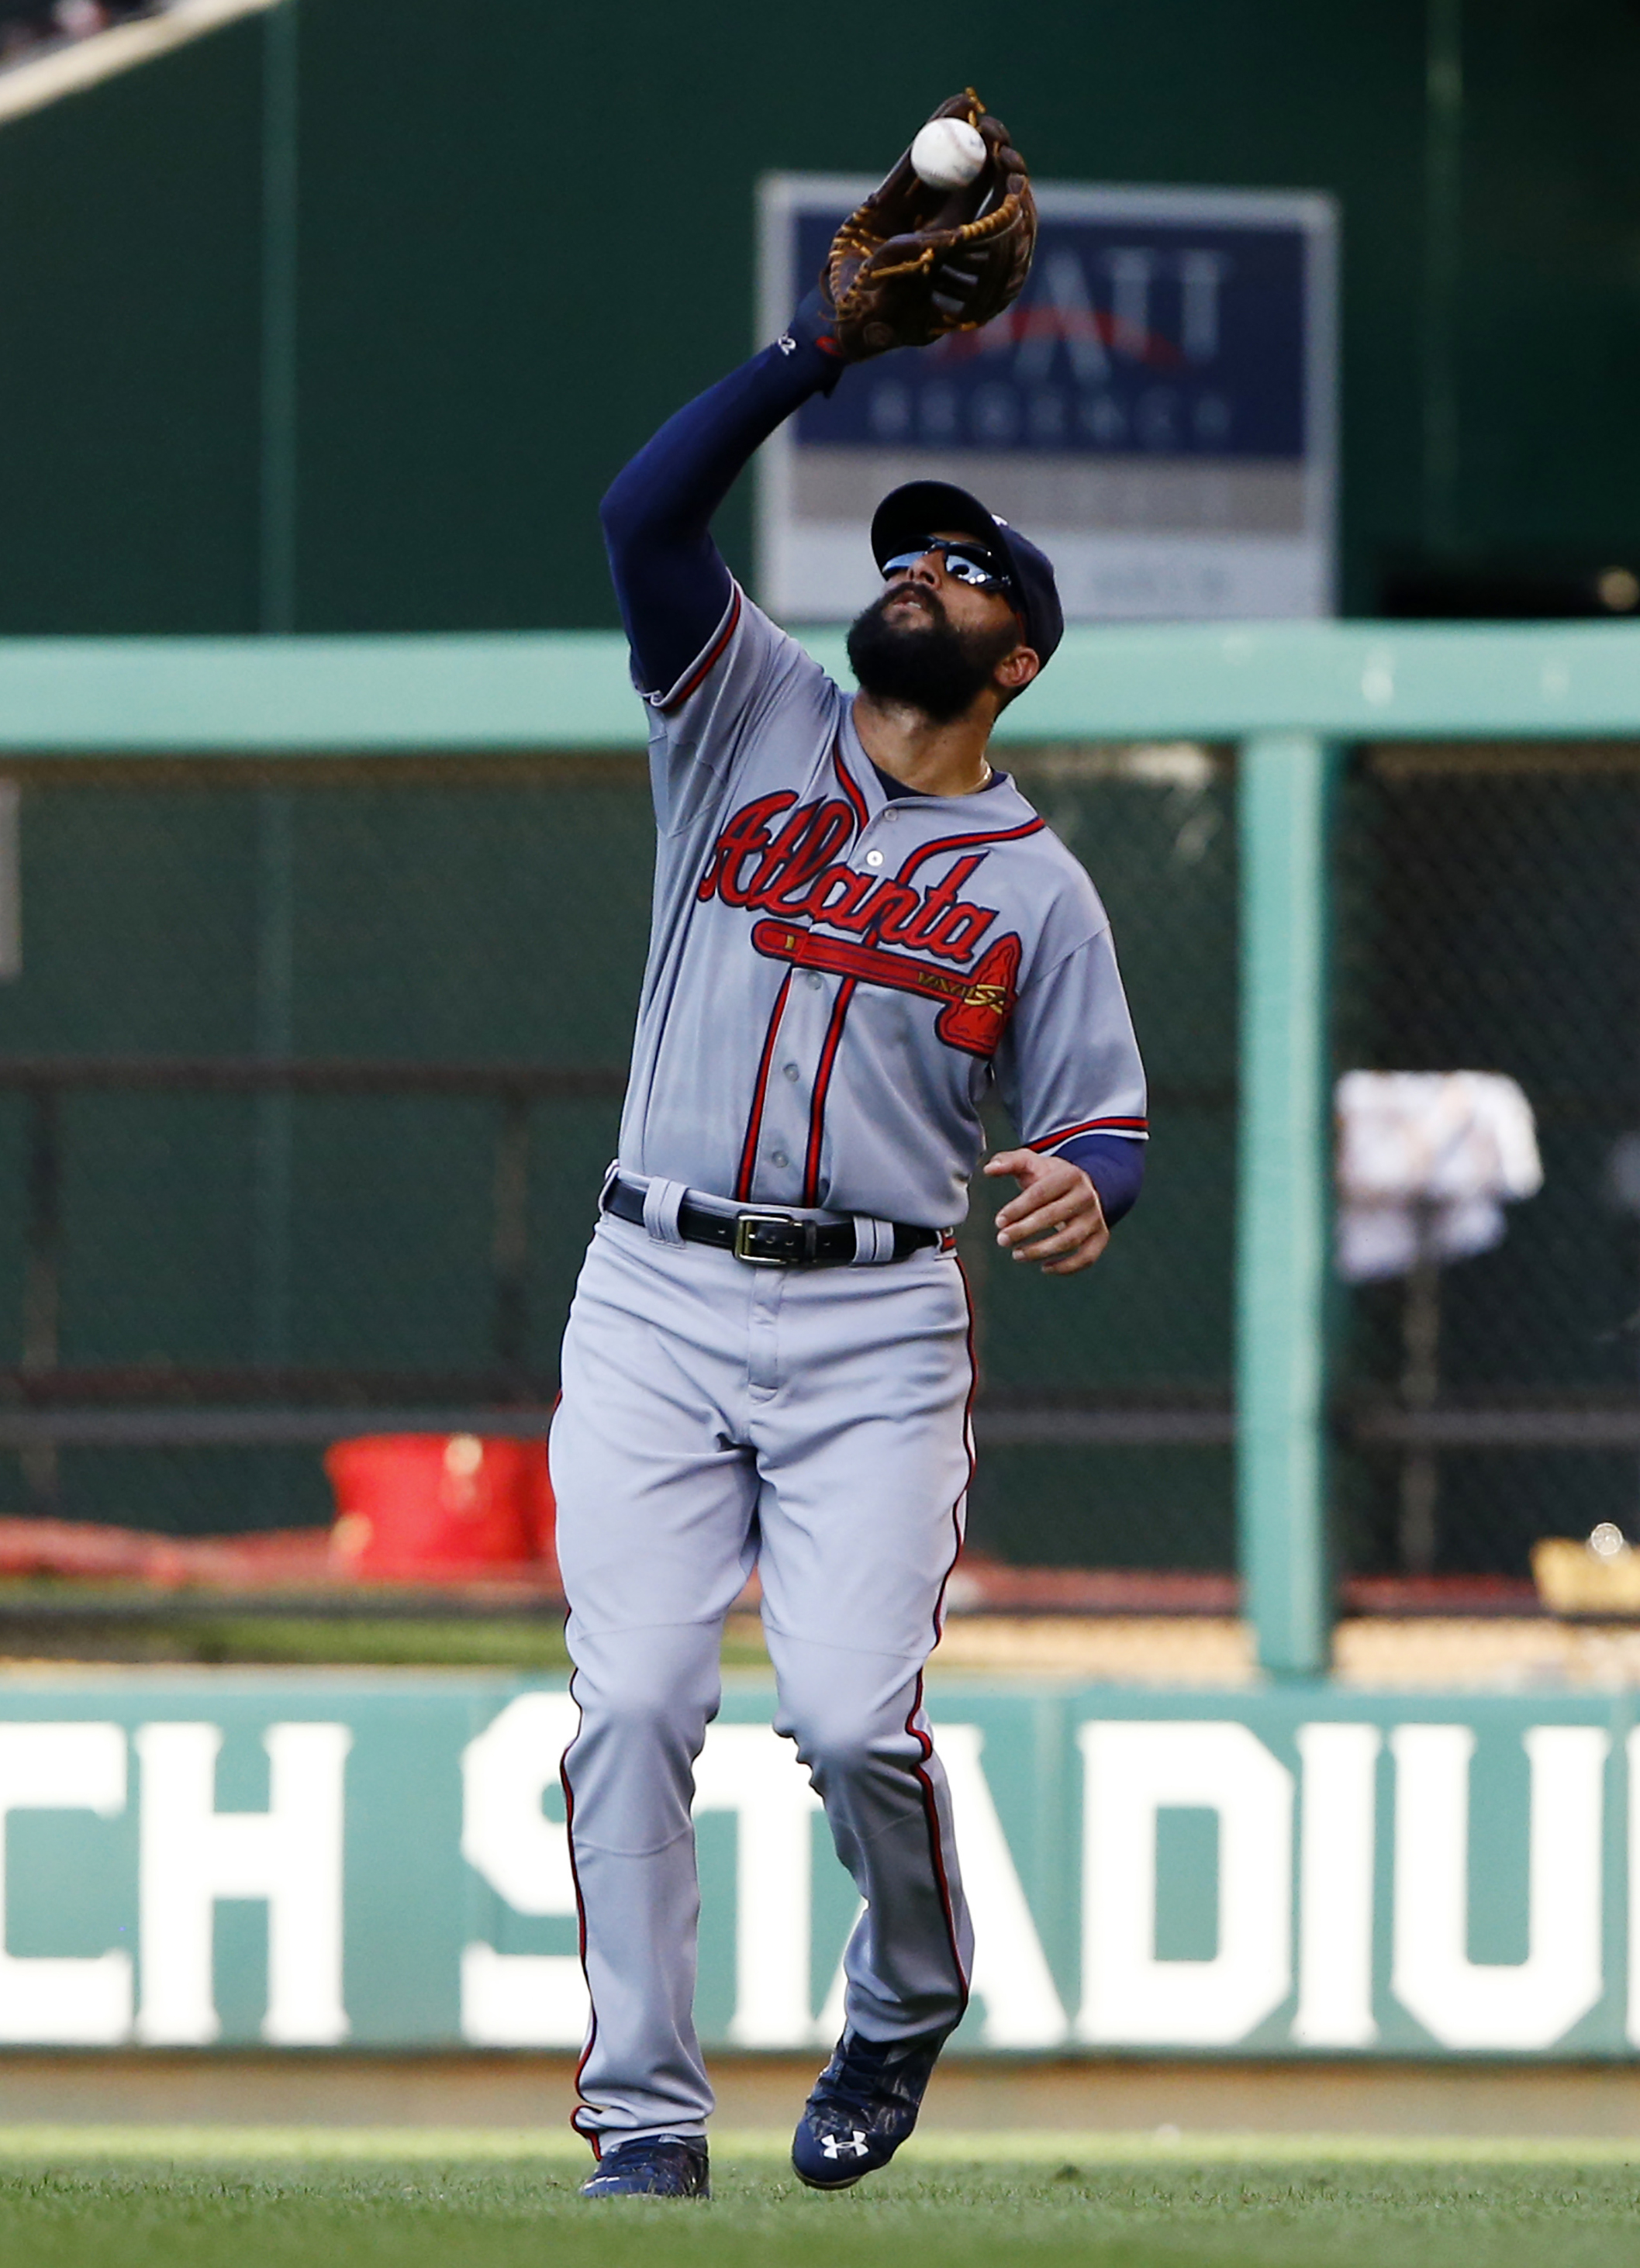 Atlanta Braves right fielder Nick Markakis catches a fly ball hit by St. Louis Cardinals' Jhonny Peralta during the fourth inning of a baseball game Saturday, July 25, 2015, in St. Louis. (AP Photo/Billy Hurst)